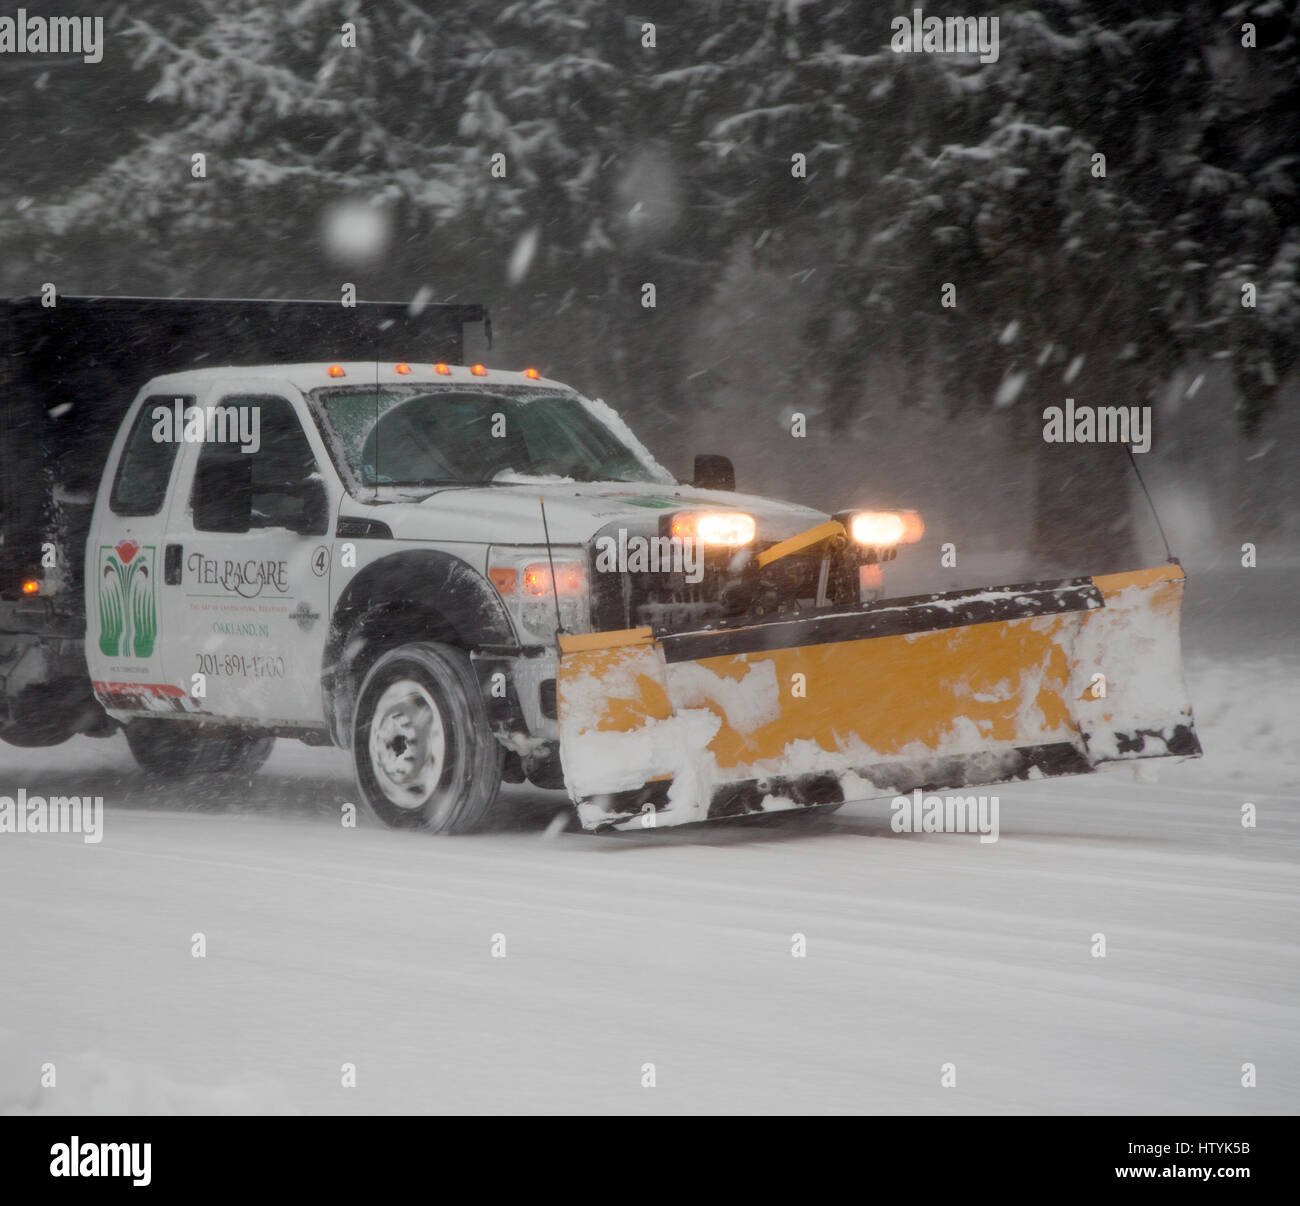 A snowplow in a snowstorm - Stock Image